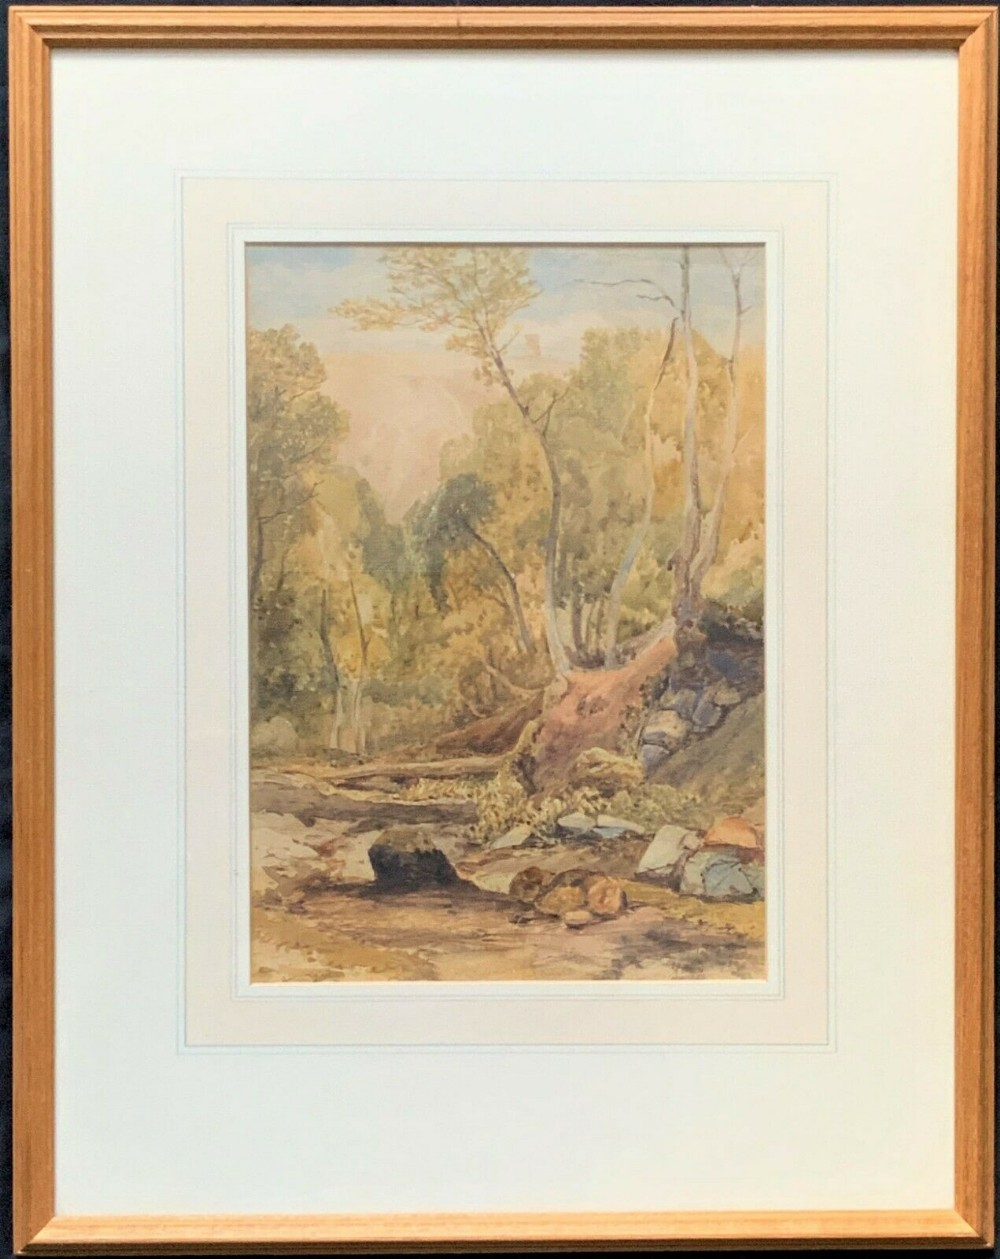 'henry barlow carter' 18041868 original 1830 woodland watercolour painting